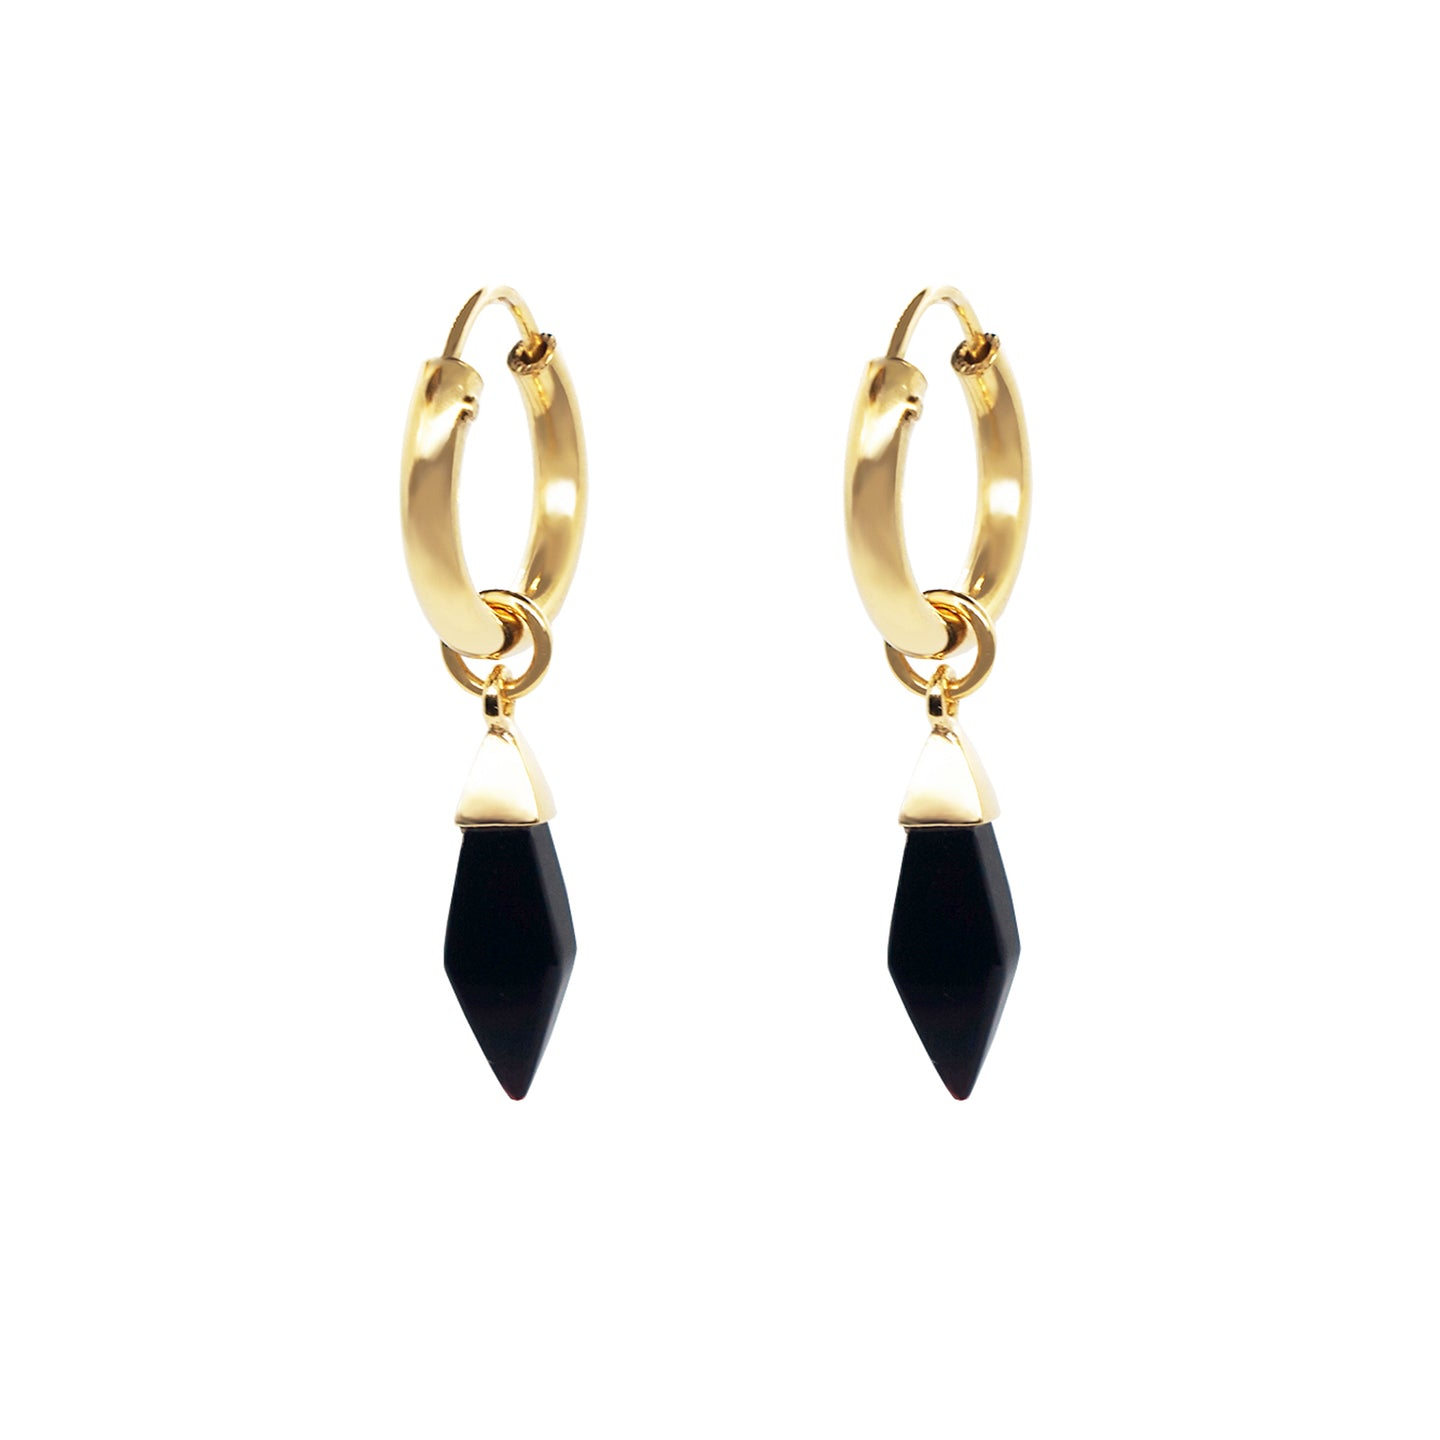 close up product shot of pair of Pawnshop gold plated sterling silver earrings with black semi precious onyx shard drop charm.  Charm drop is approx 10mm long, and has a gold cap and jump ring attaching it to the hoop. Product is shot on a white background.